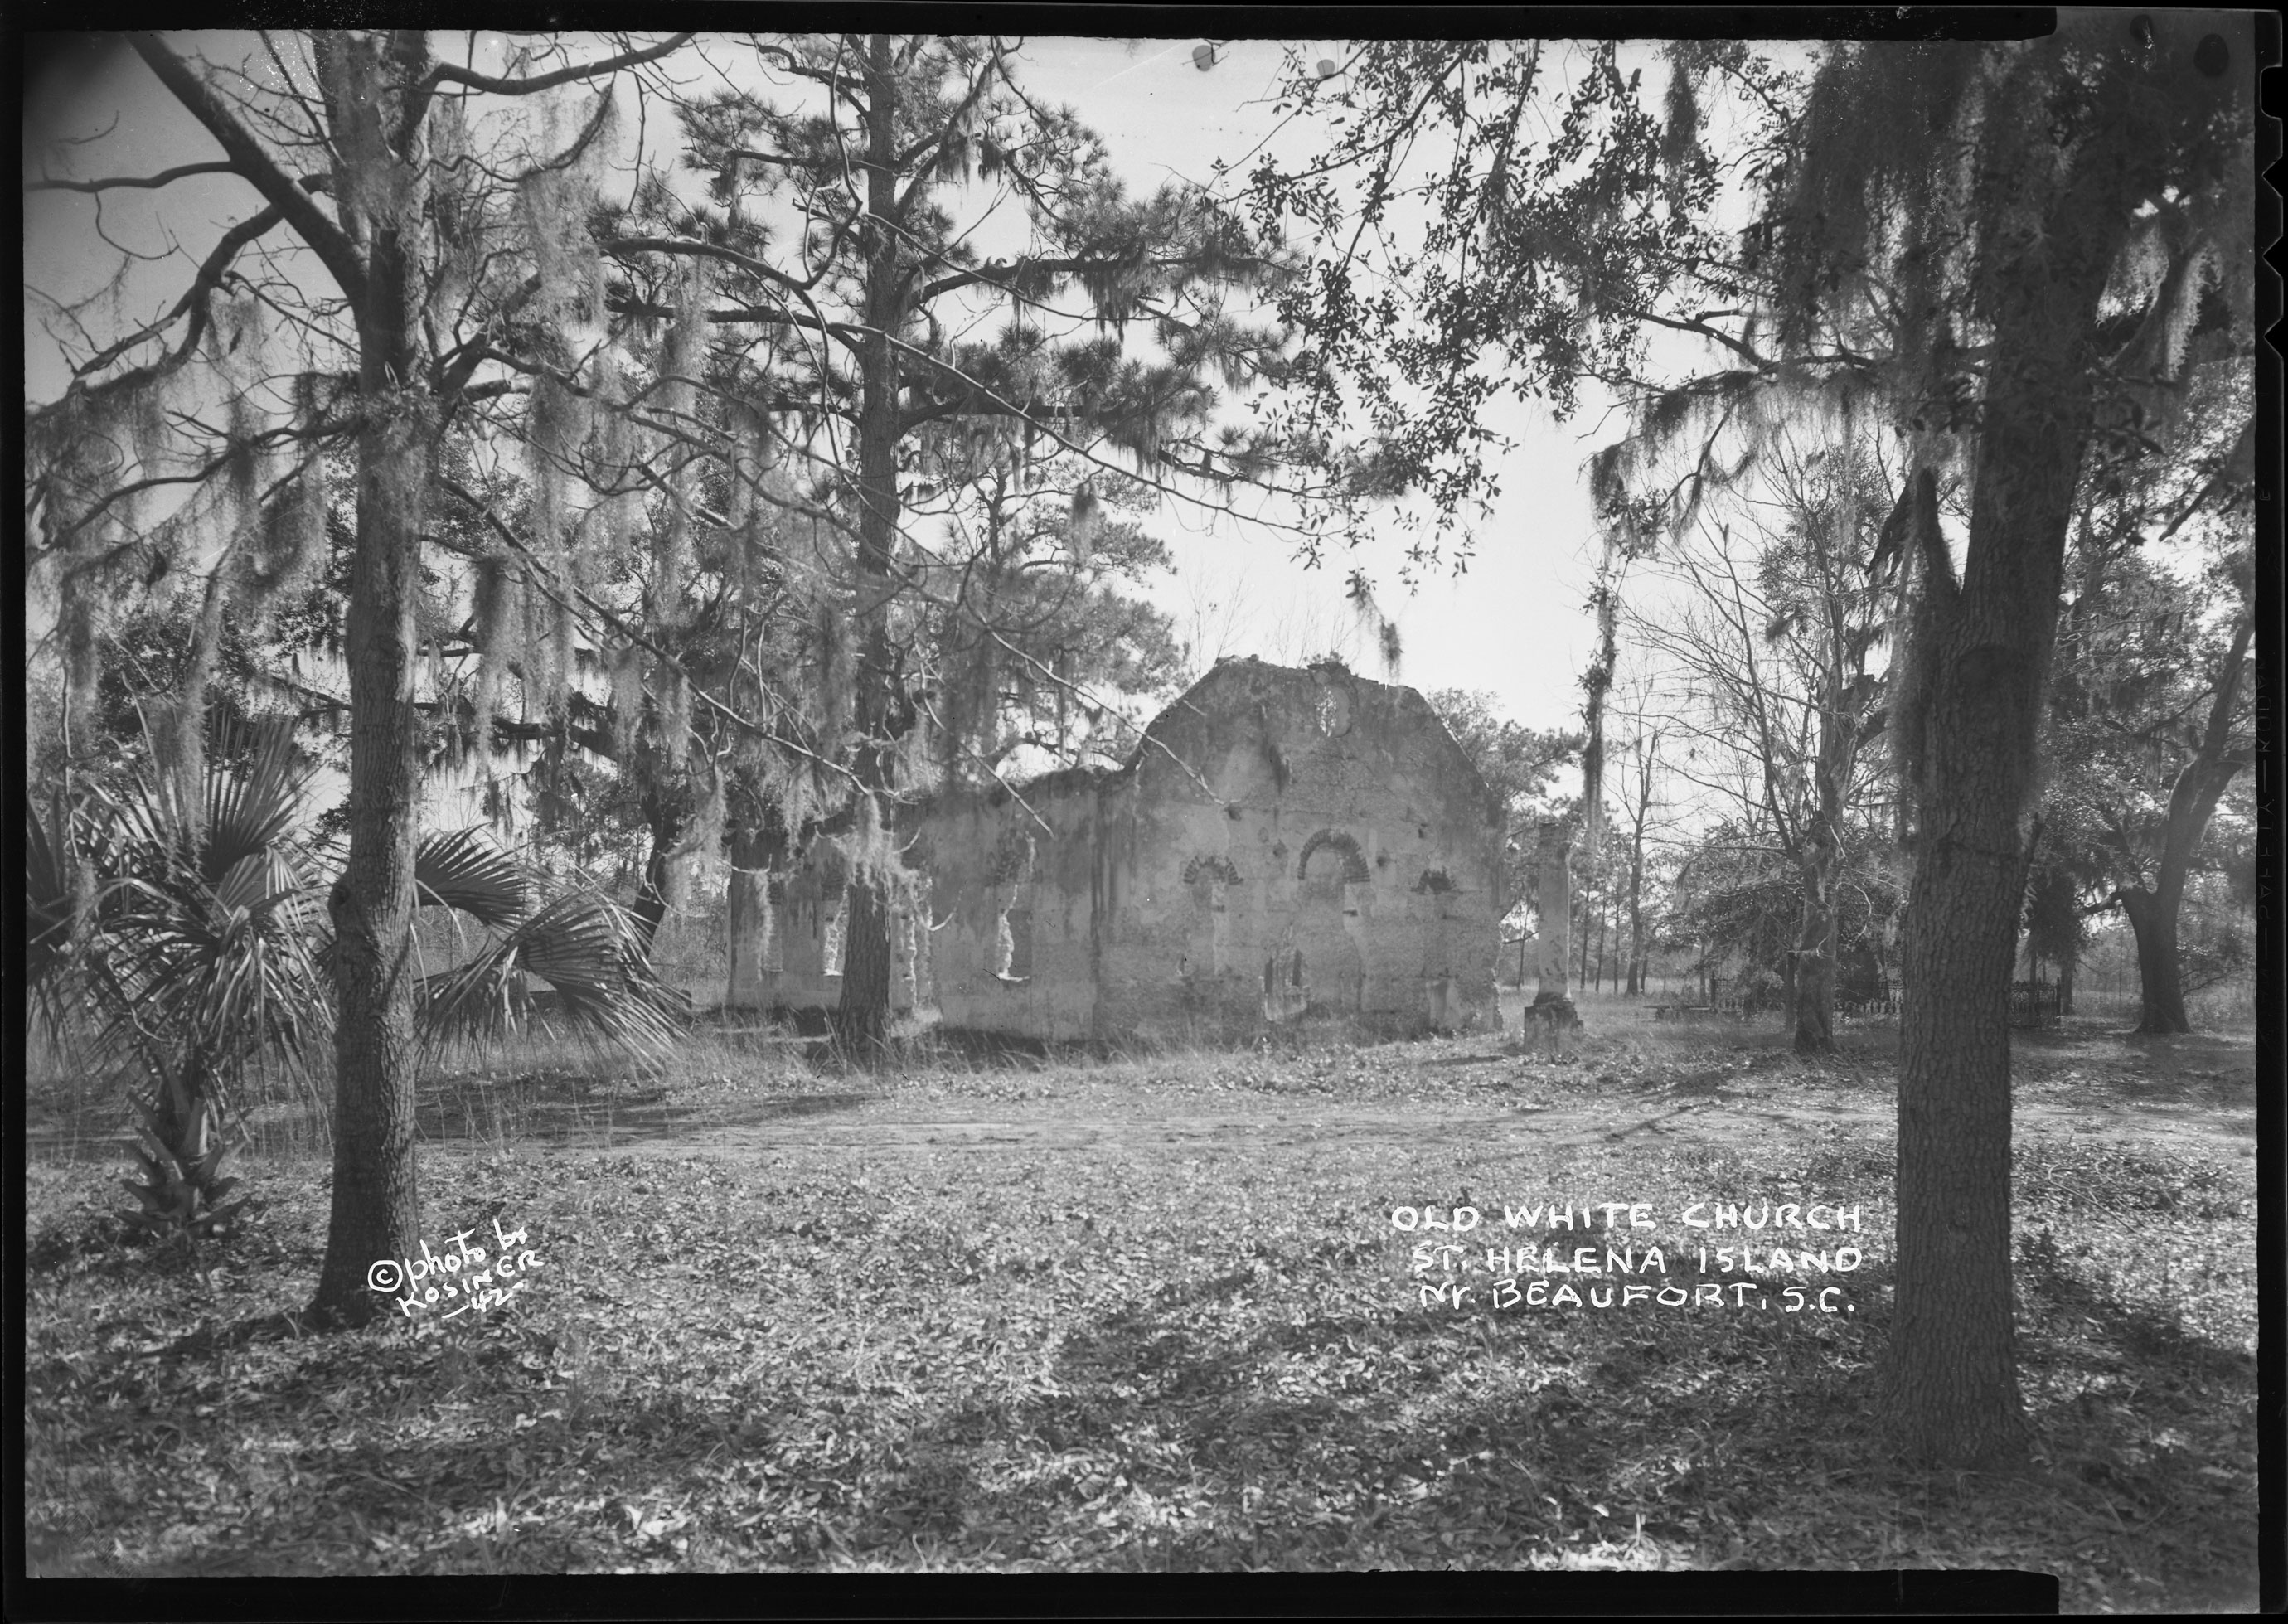 Old White Church, St. Helena Island,Beaufort, S.C.